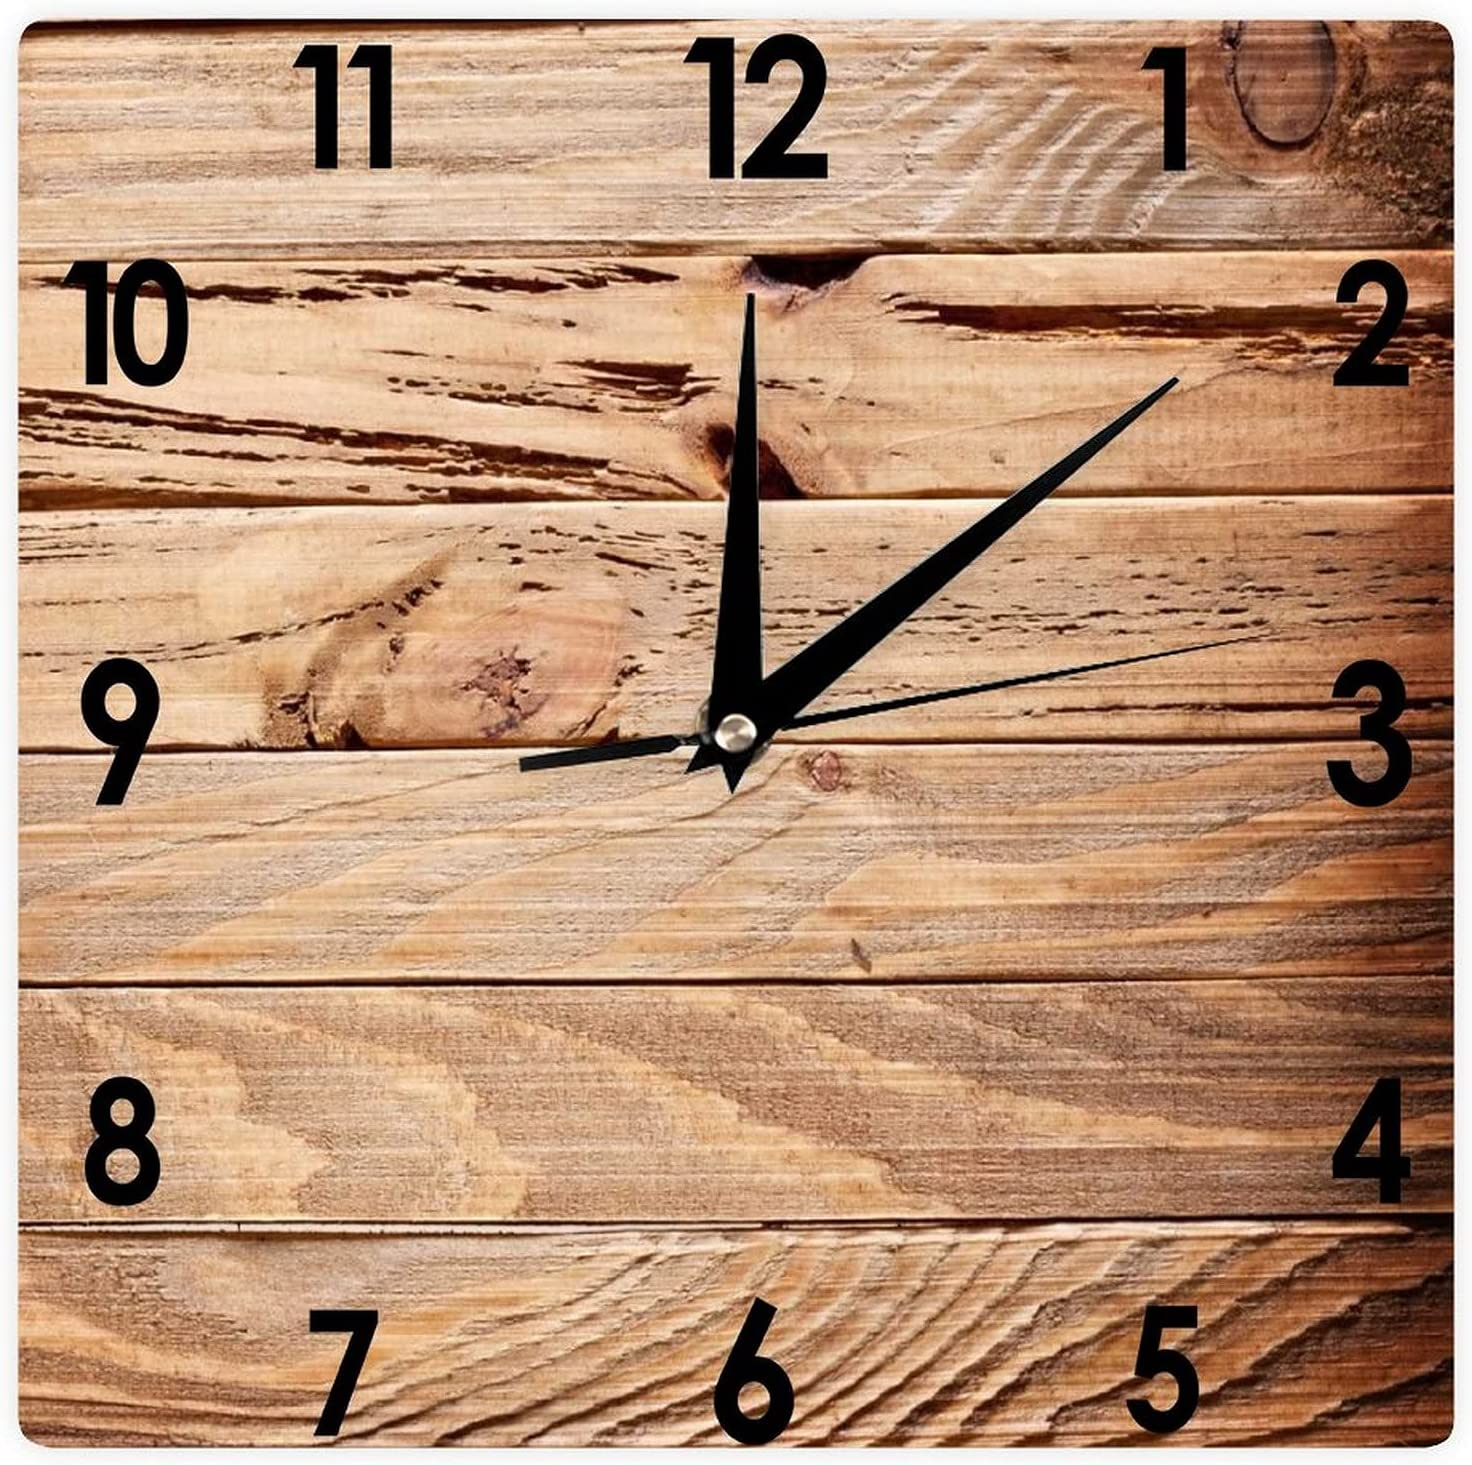 Aihesui Chicago Mall Decorative Square Wooden Hanging Don't miss the campaign Clock Retro Wall Rustic